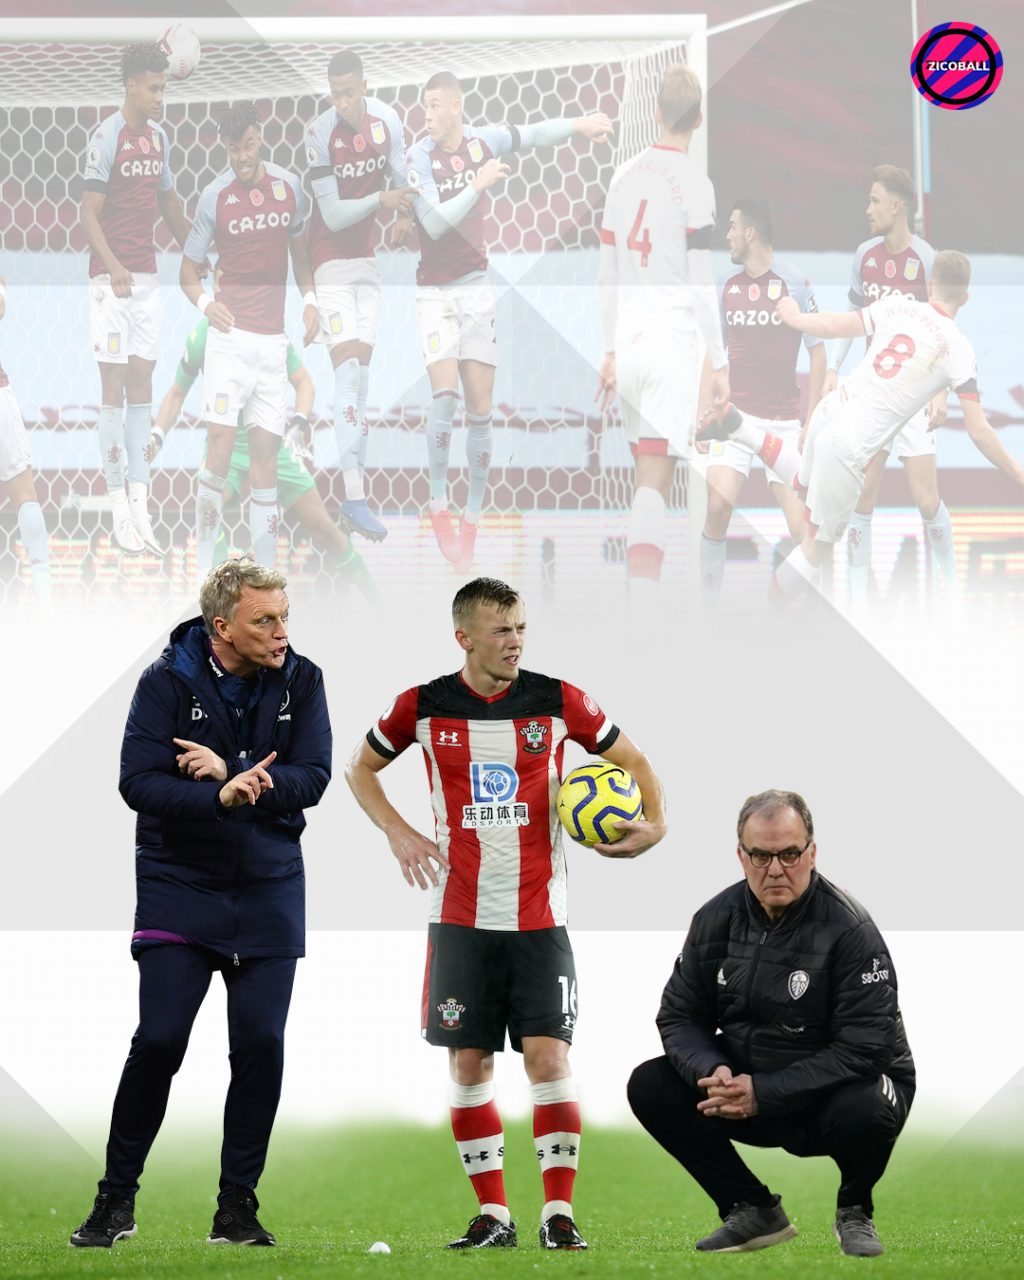 James Ward-Prowse, Bielsa and Moyes standing over a free kick